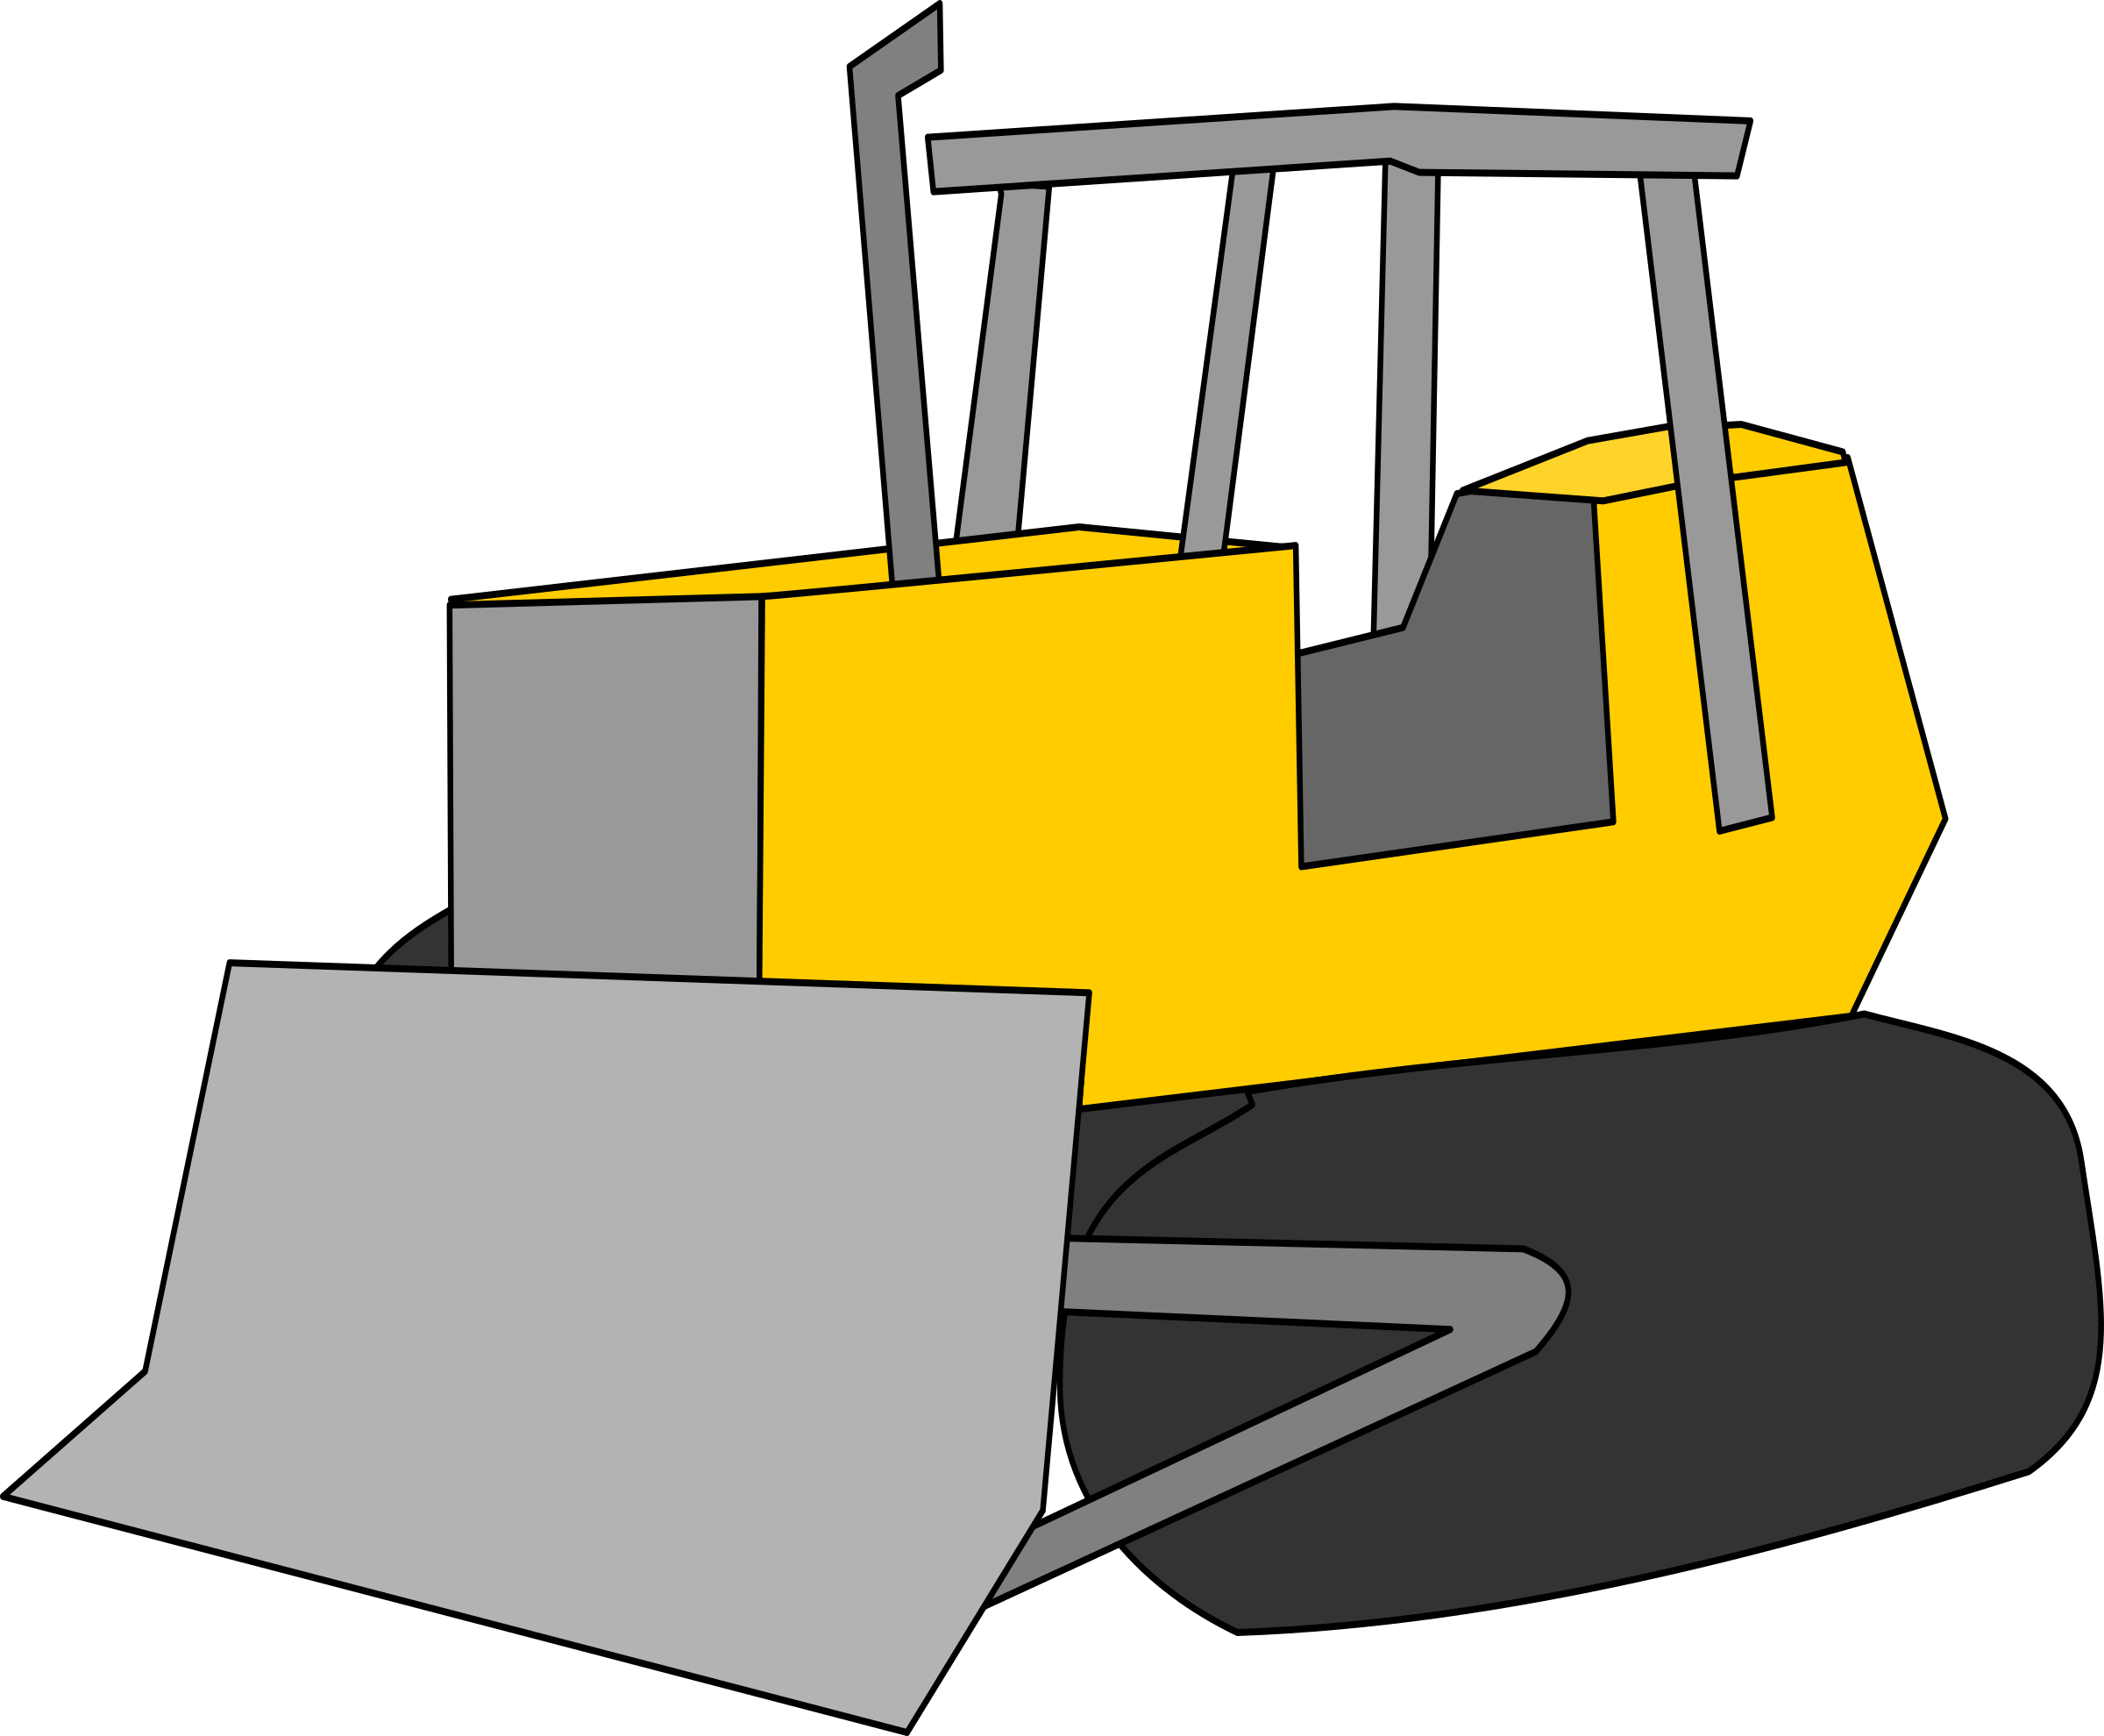 Bulldozer svg simple. Clipart just big image